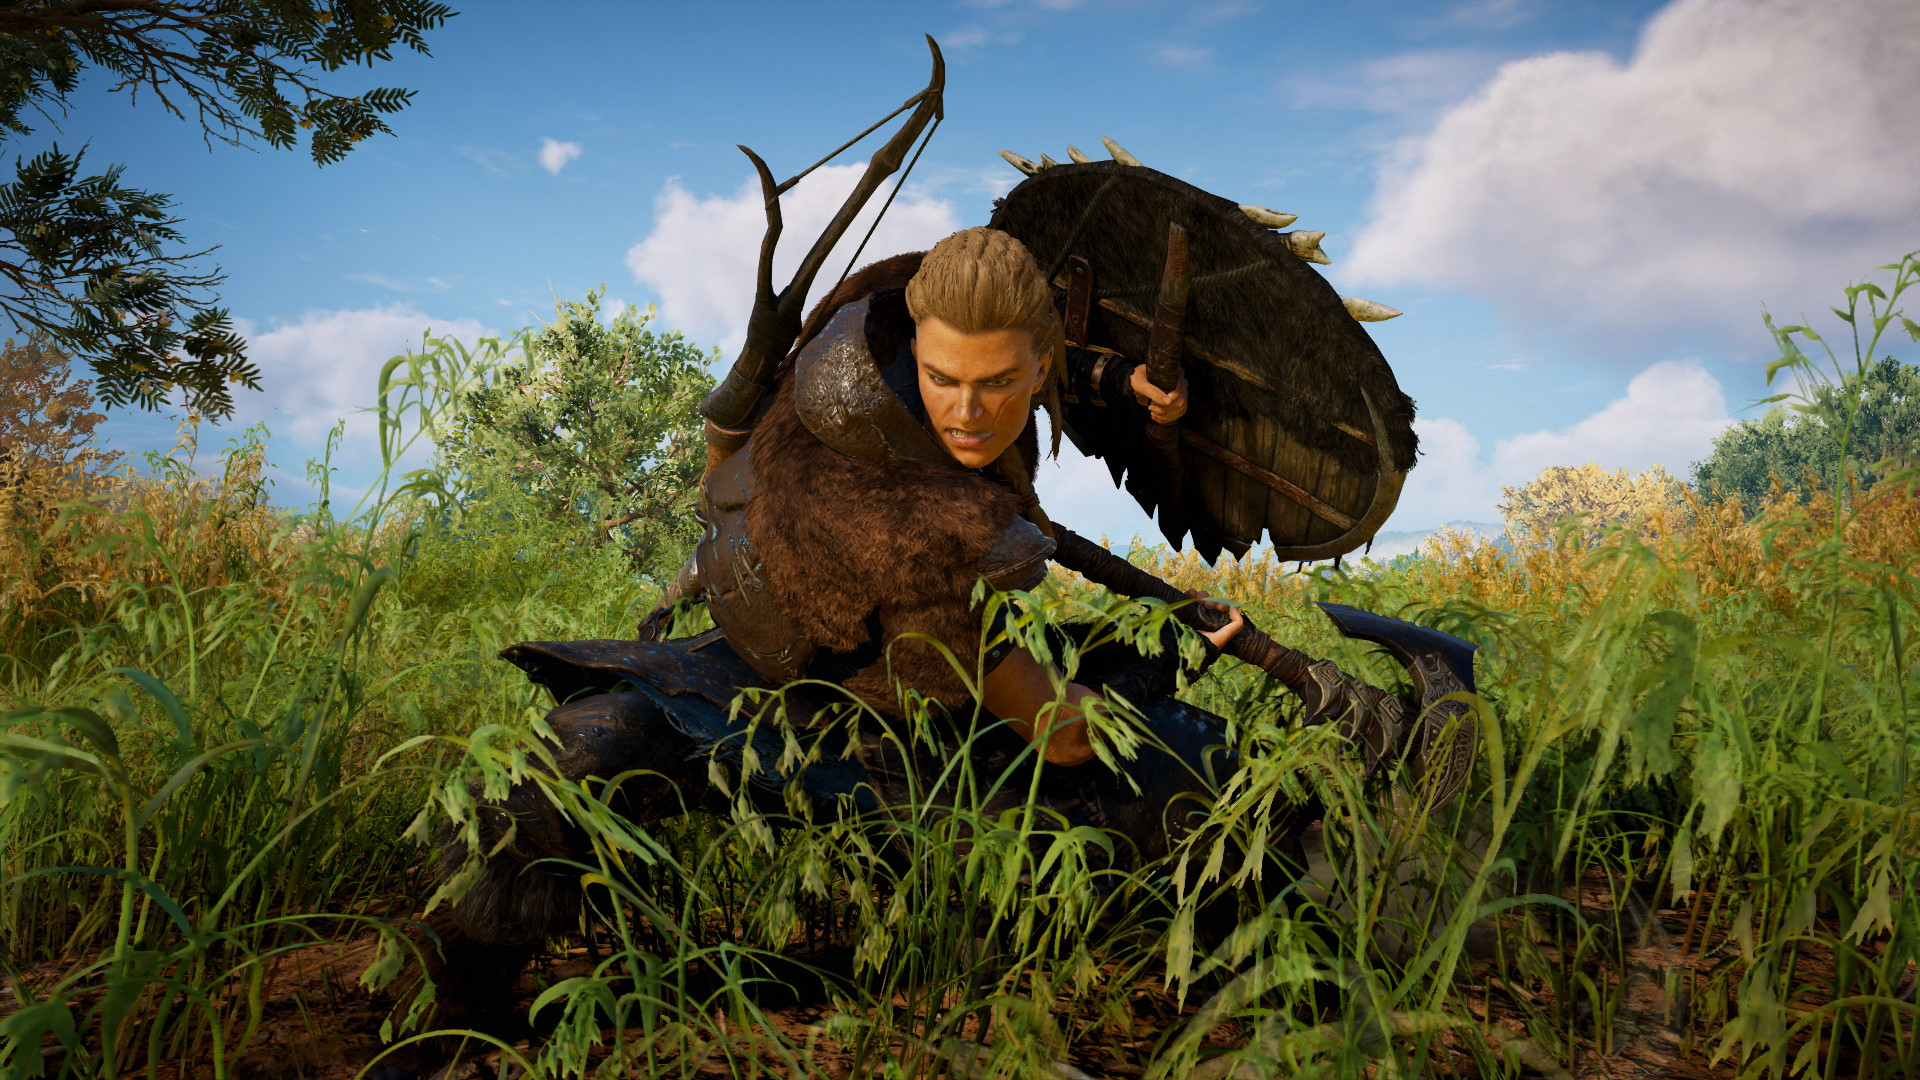 A screenshot of Eivor cutting grass with her axe in Assassin's Creed Valhalla.